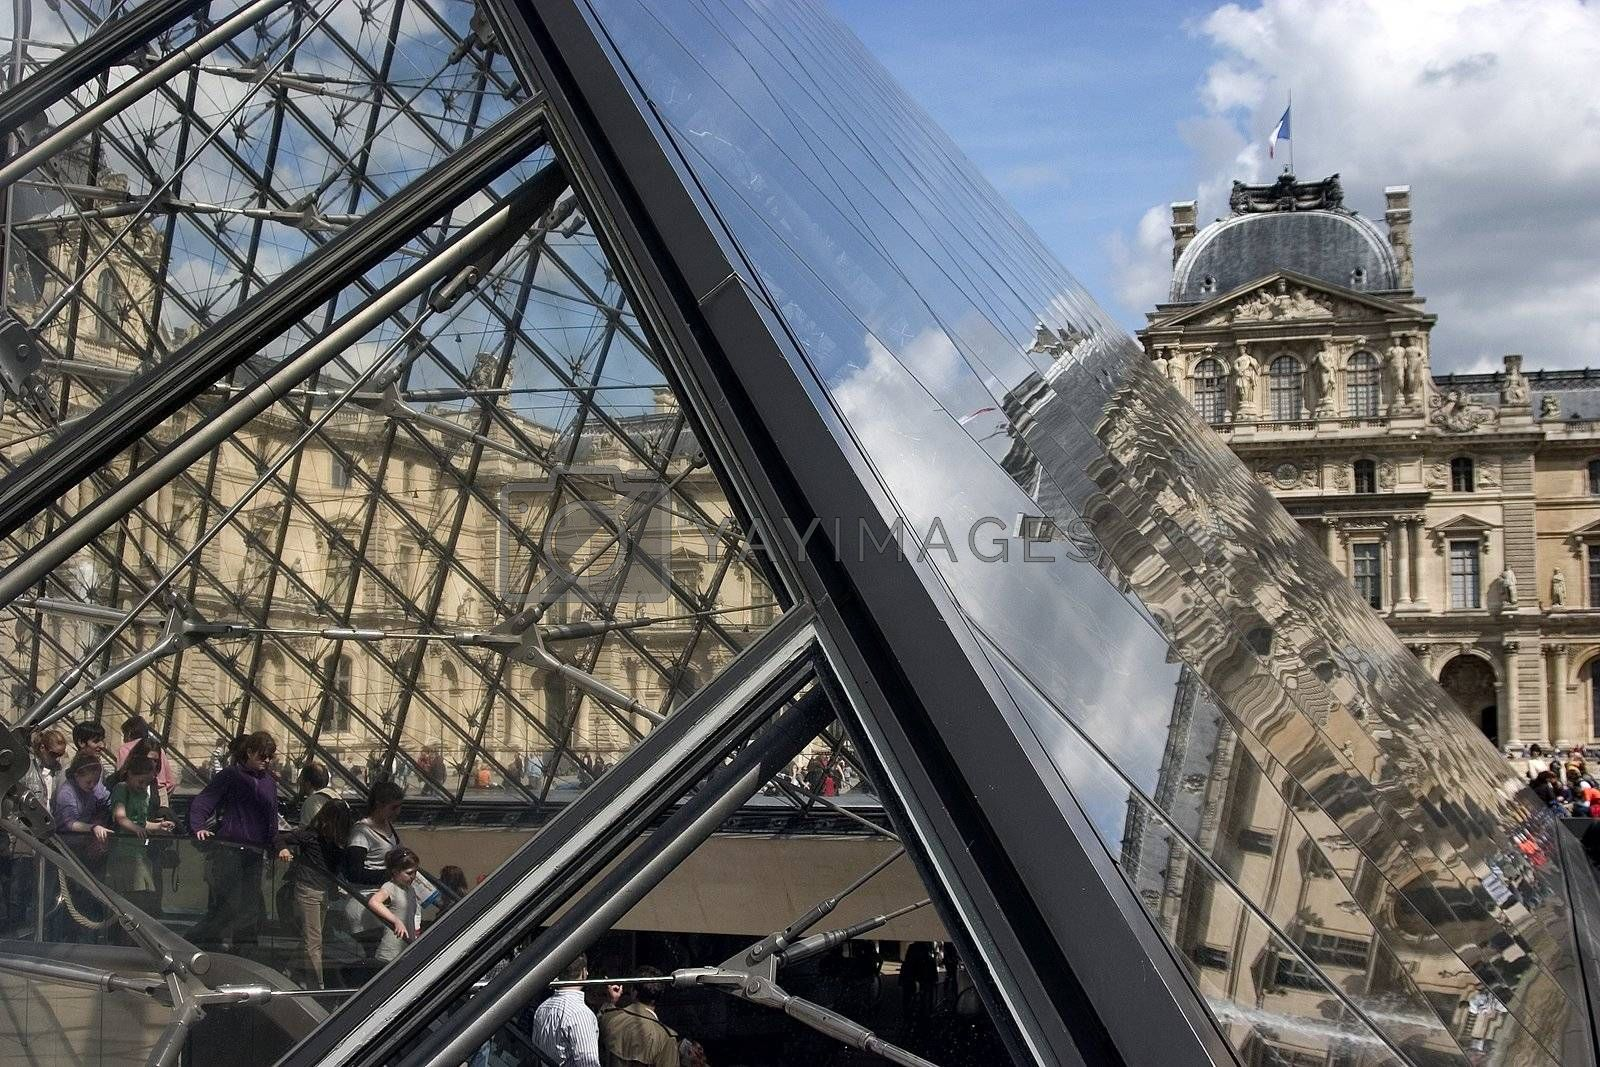 The glass pyramid in Louvre in Paris